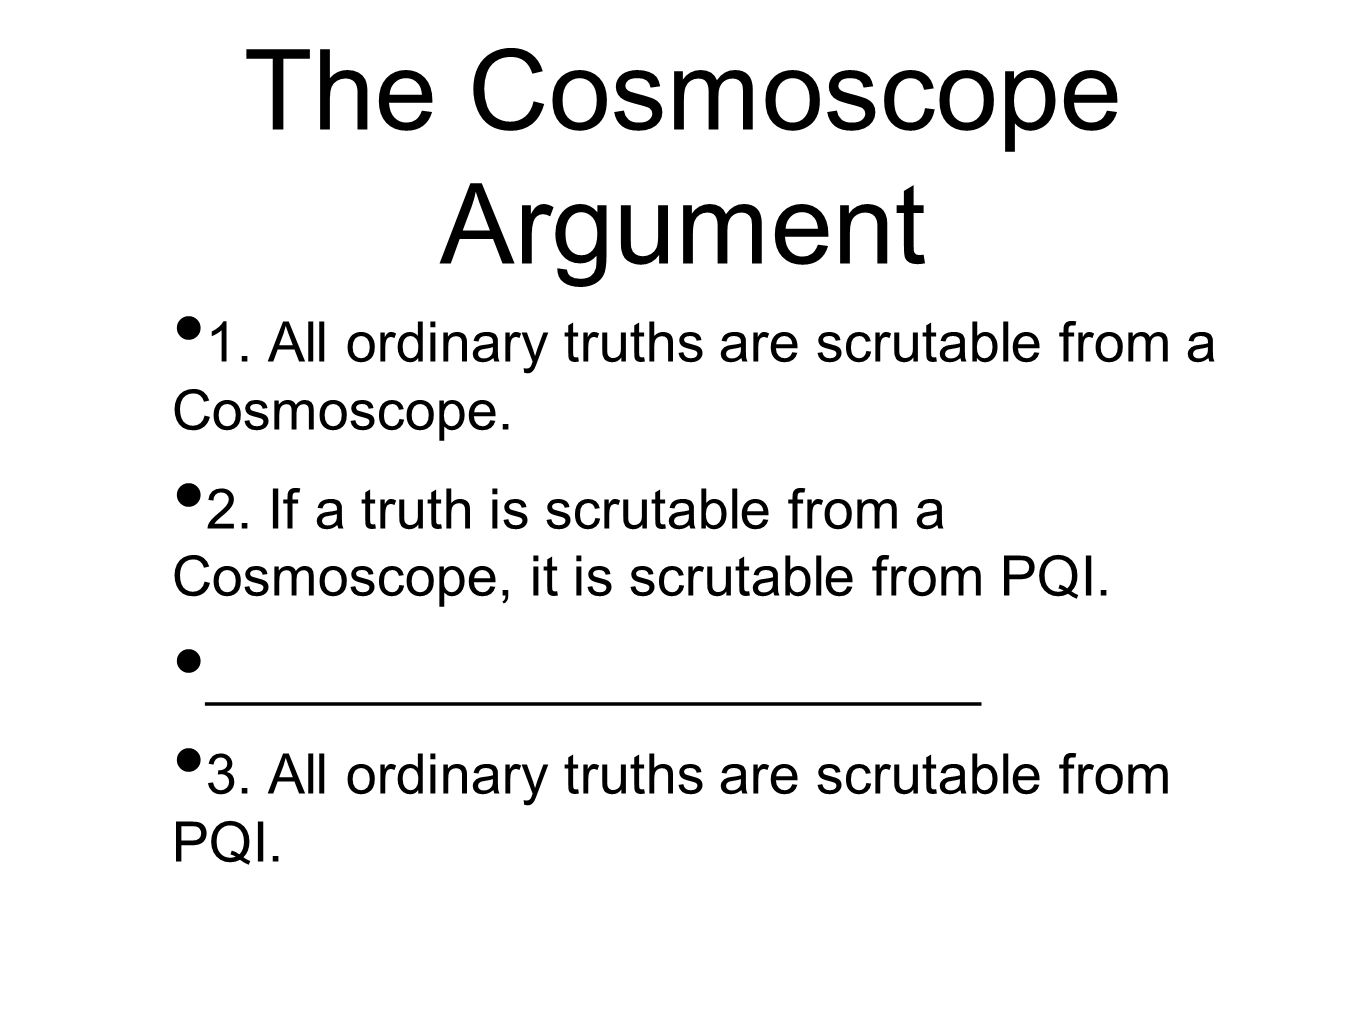 The Cosmoscope Argument 1. All ordinary truths are scrutable from a Cosmoscope. 2. If a truth is scrutable from a Cosmoscope, it is scrutable from PQI